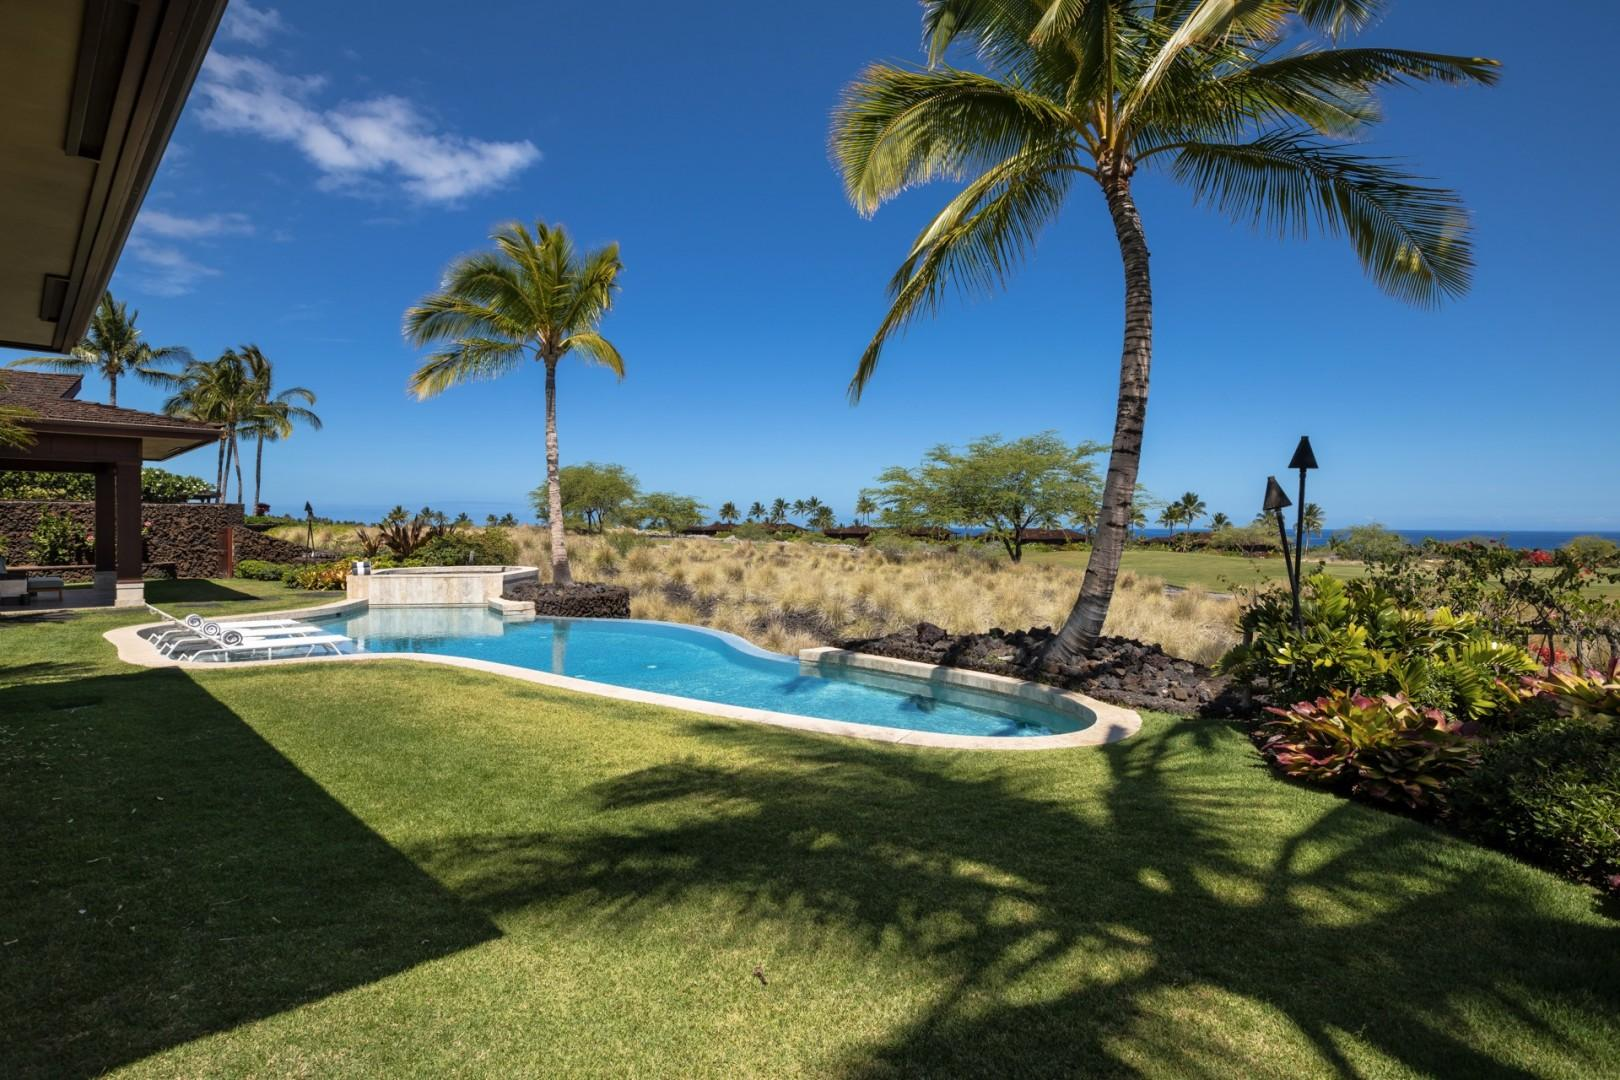 Alternate view of pool and grassy lawn, perfect for yard games and enjoying the tropical climate.